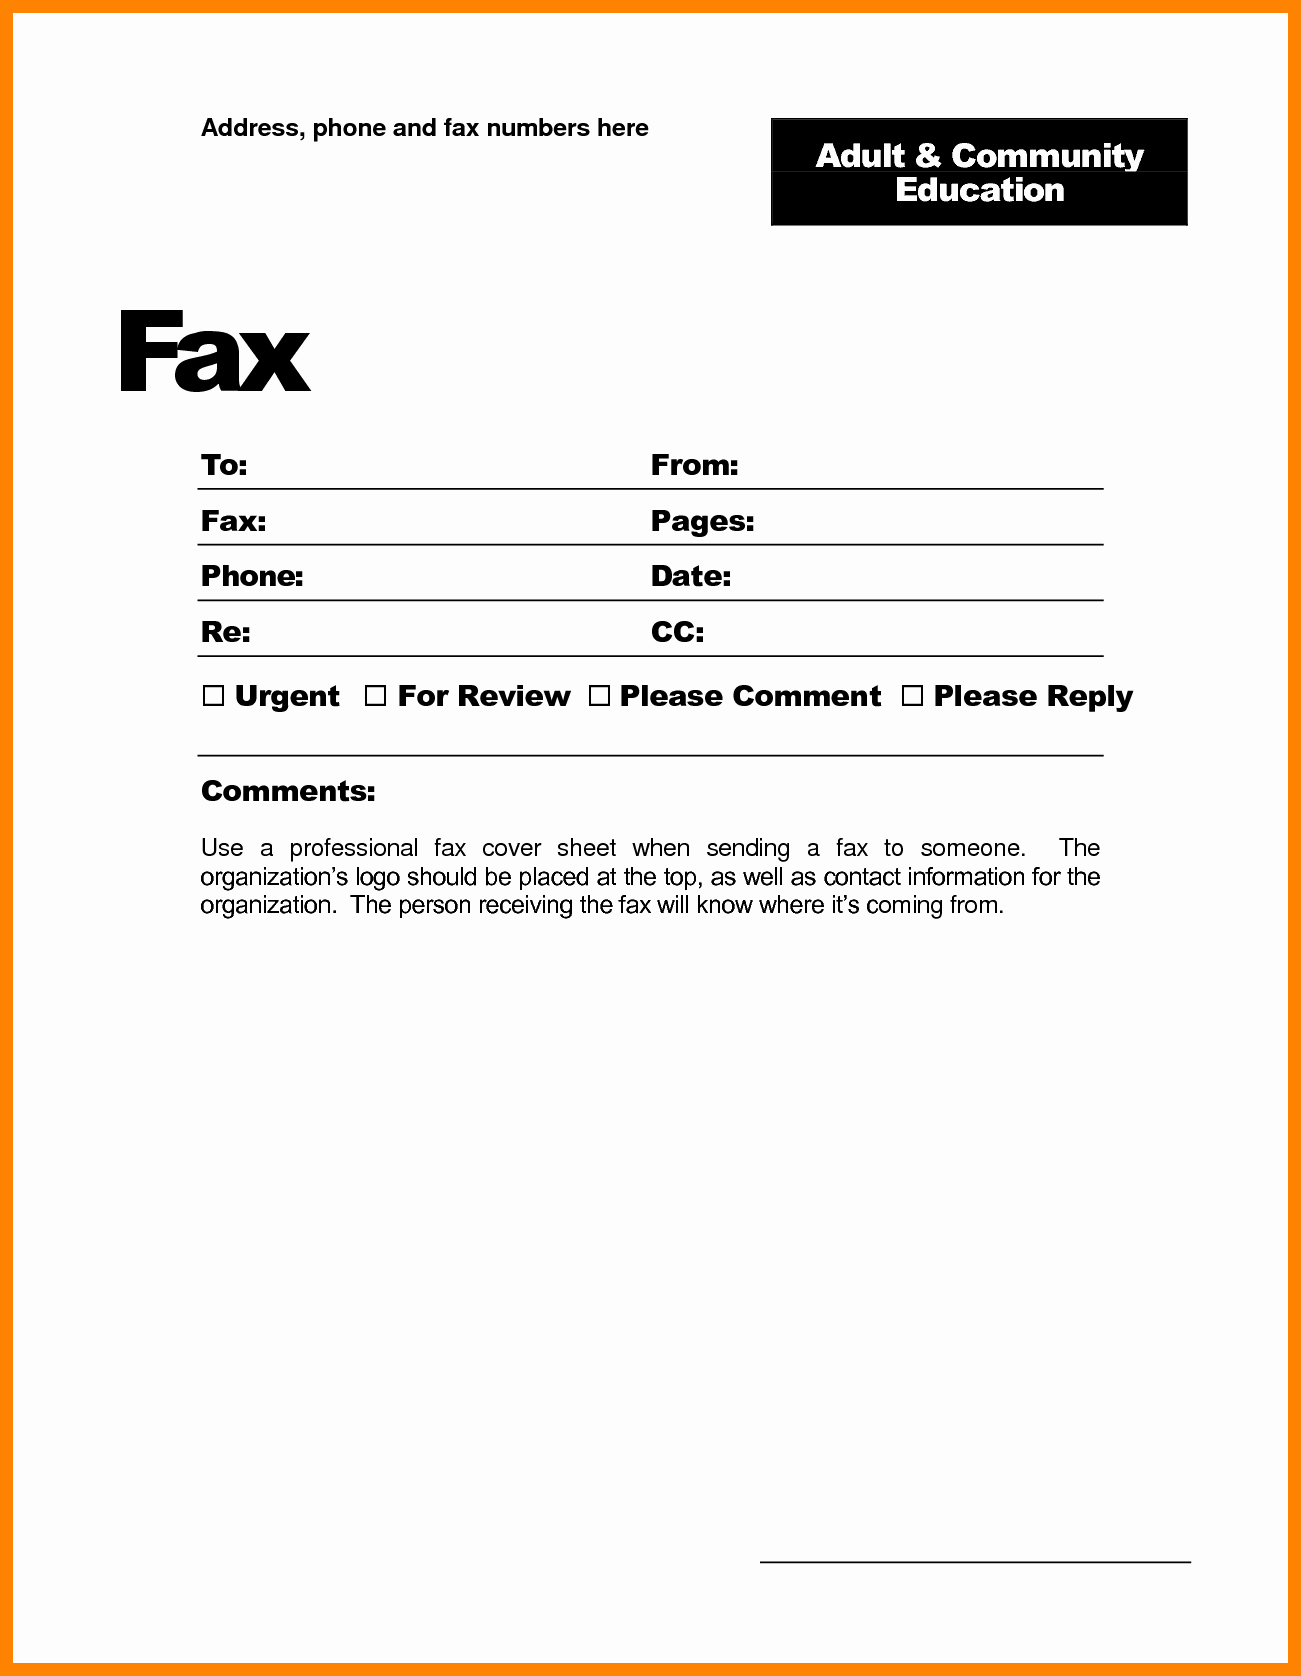 Free Fax Cover Sheet Templates Luxury Fax Cover Template Word Portablegasgrillweber